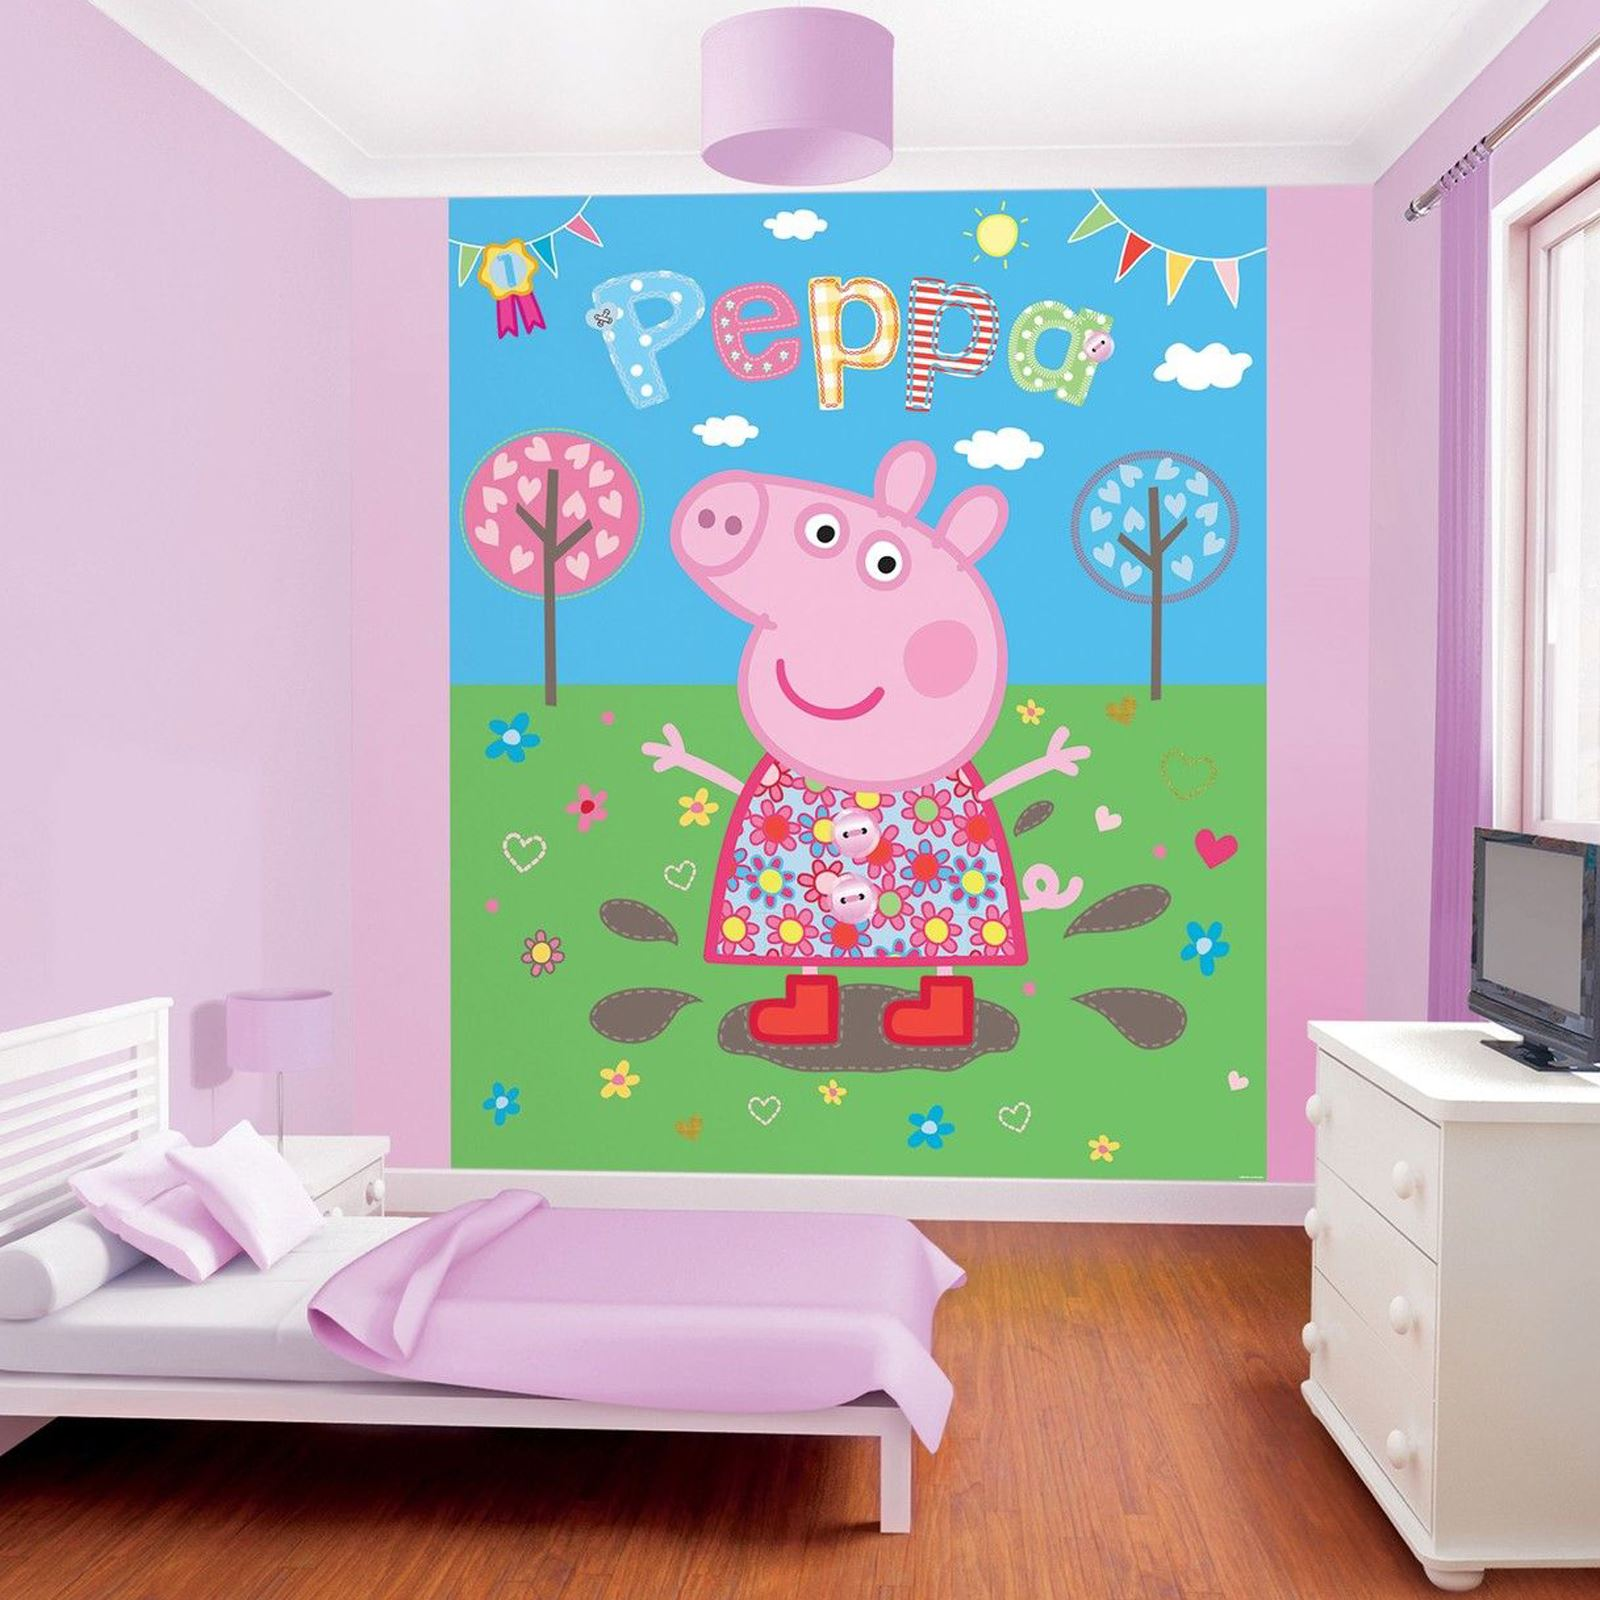 Bedroom Murals Uk: WALLTASTIC WALLPAPER WALL MURALS KIDS BEDROOM